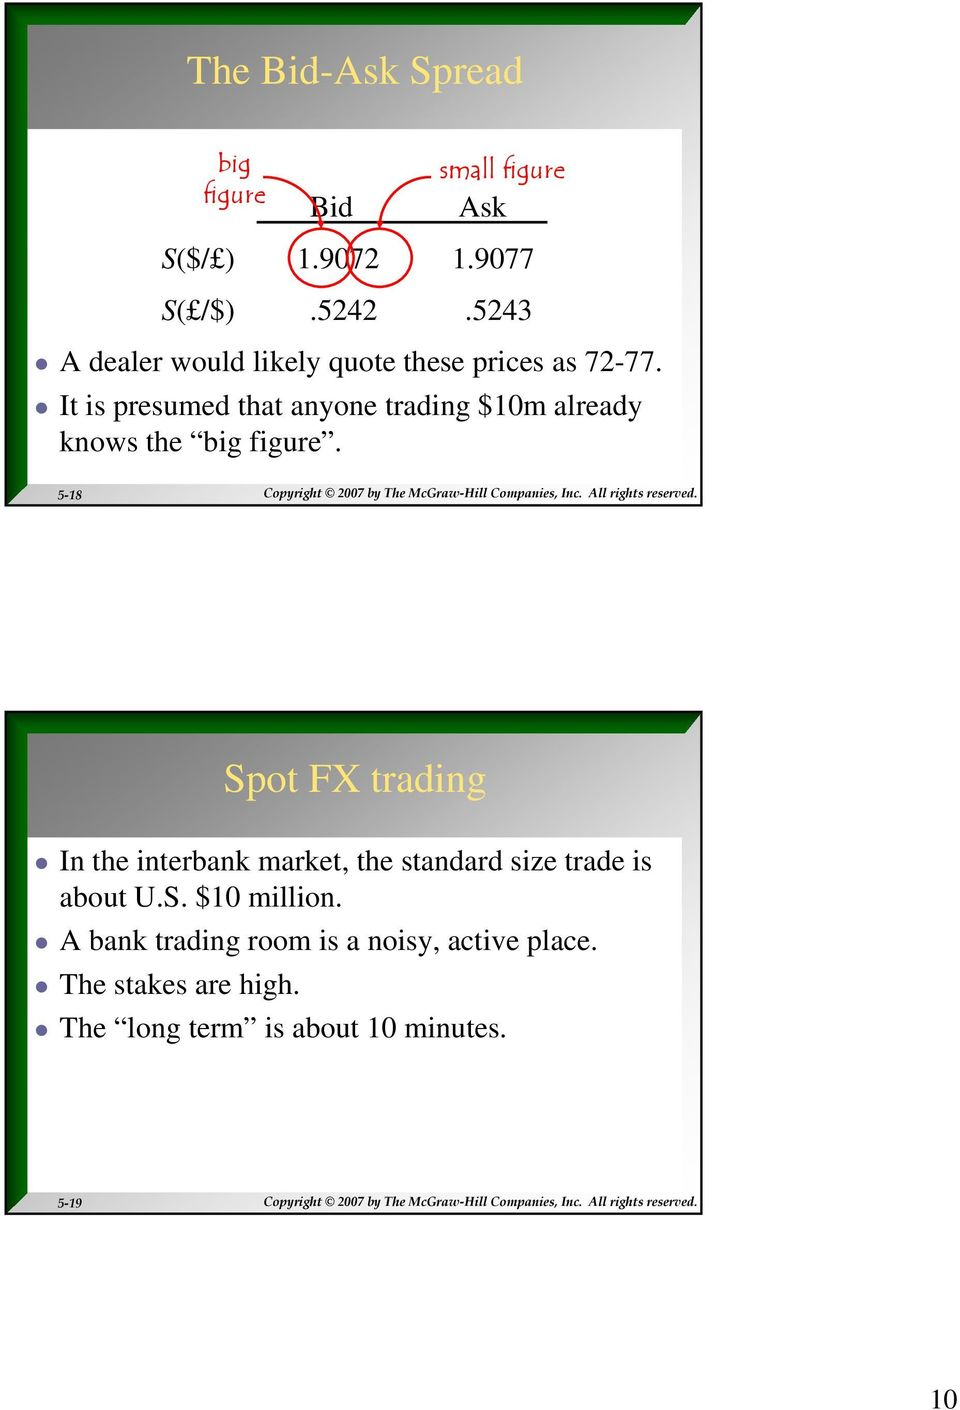 Foreign exchange pdf